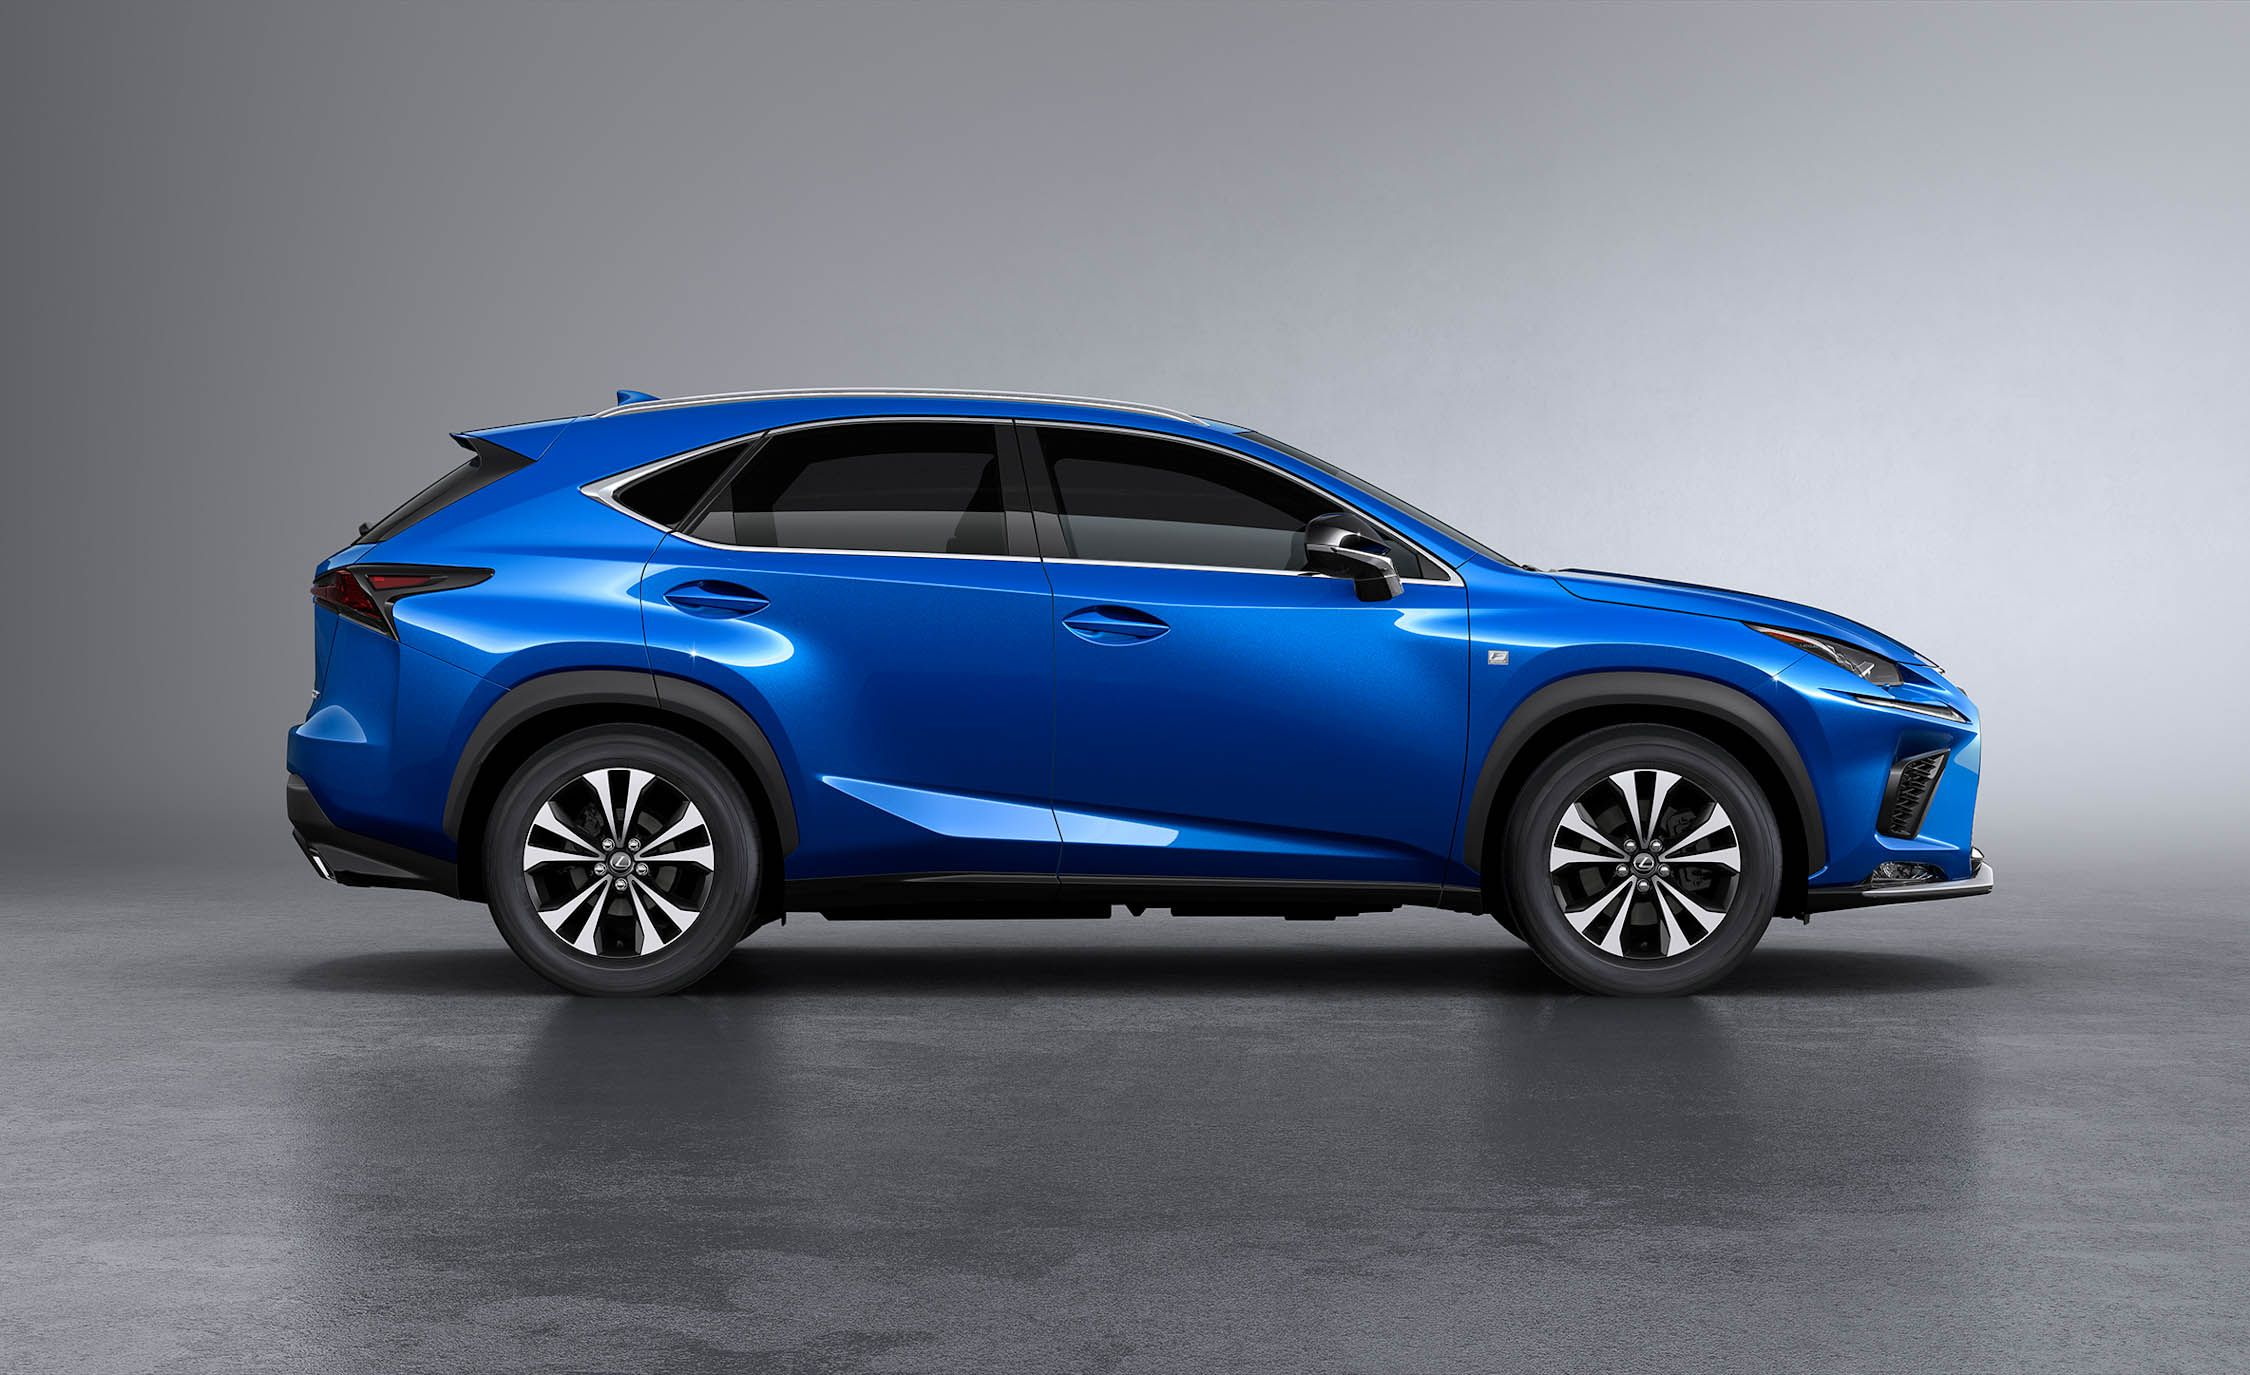 אדיר 2019 Lexus NX Reviews | Lexus NX Price, Photos, and Specs | Car ZR-23